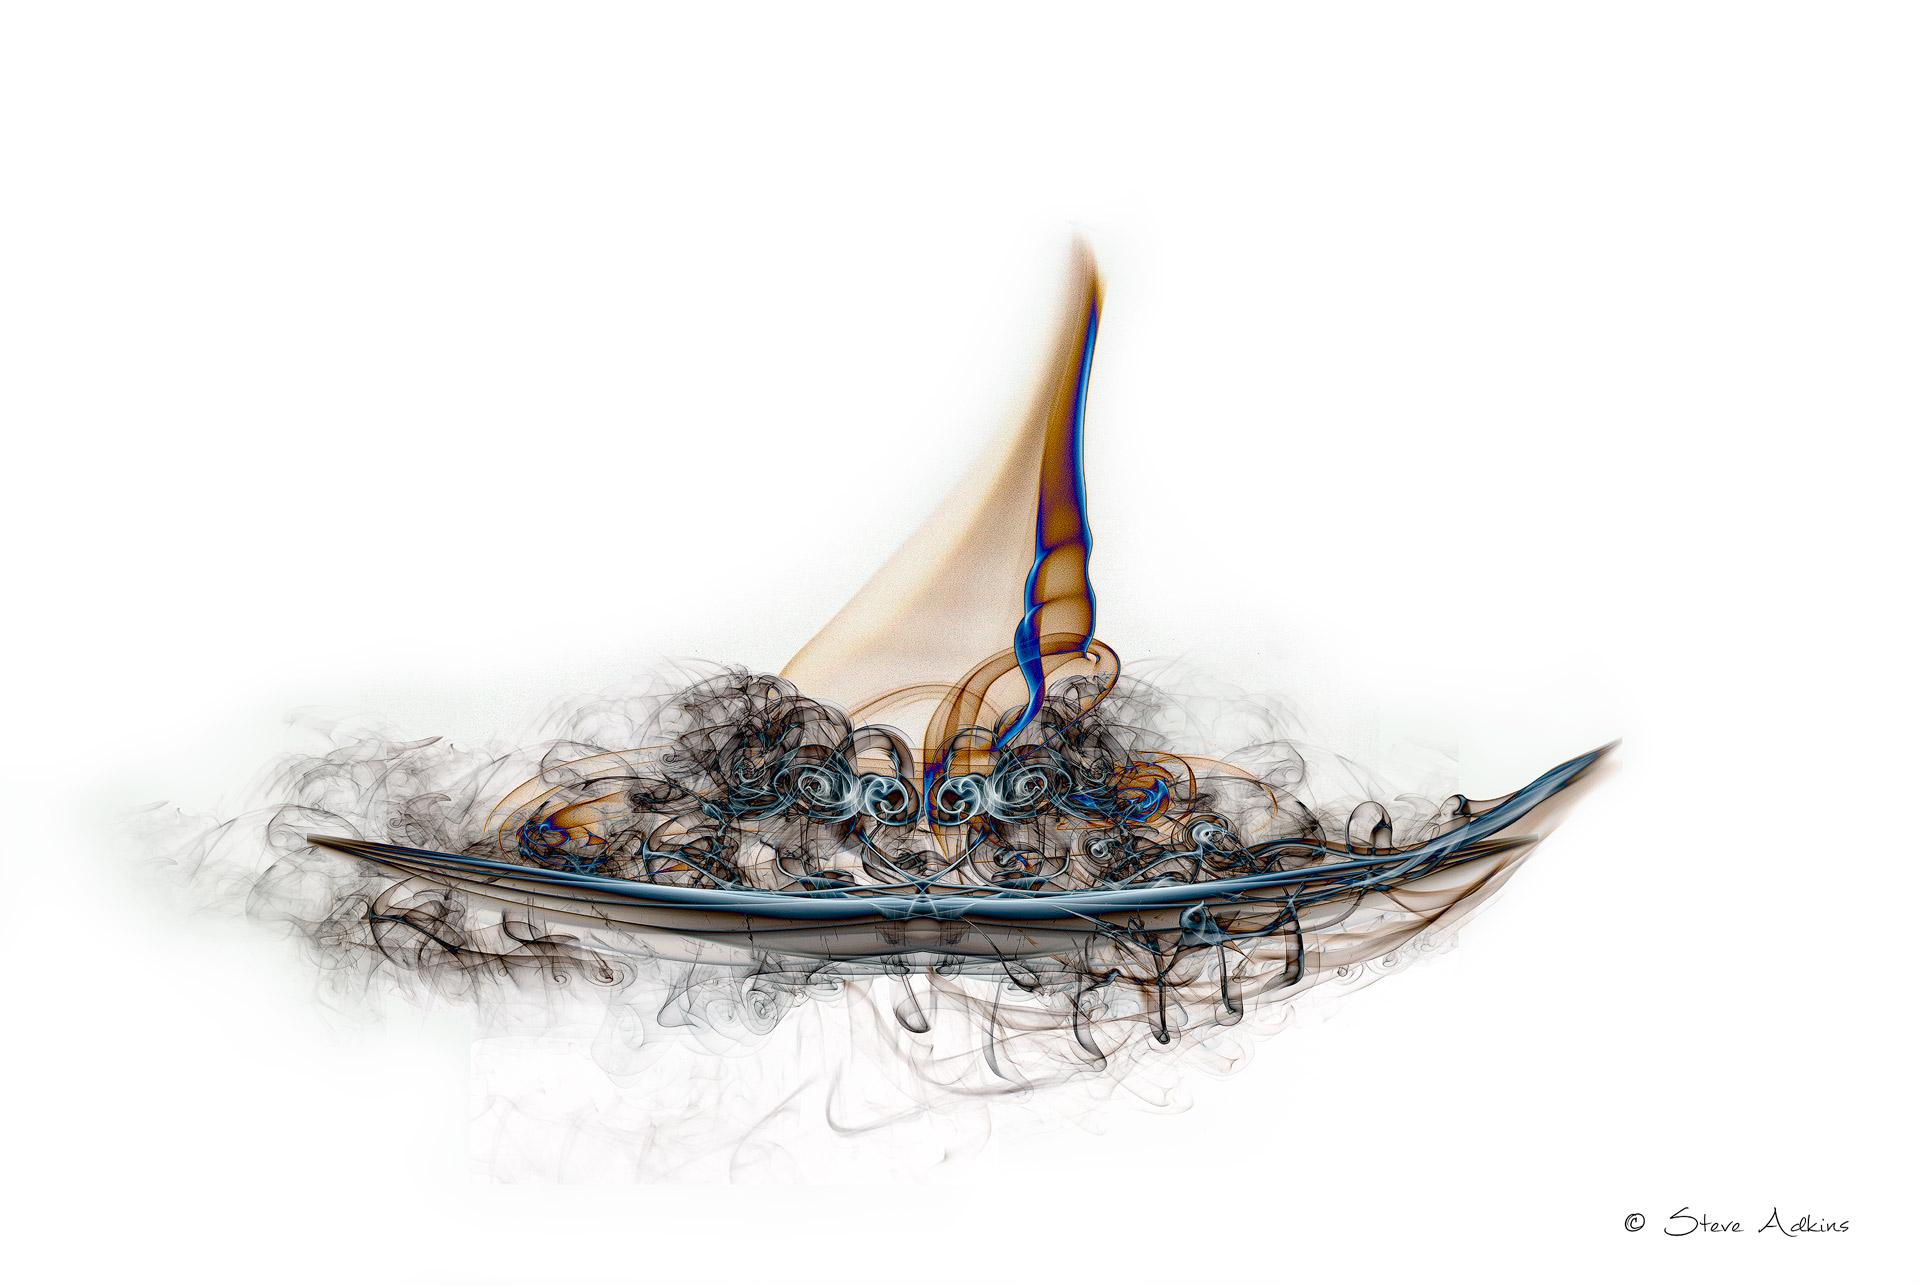 Smoke Boat Composite made from different smoke images.